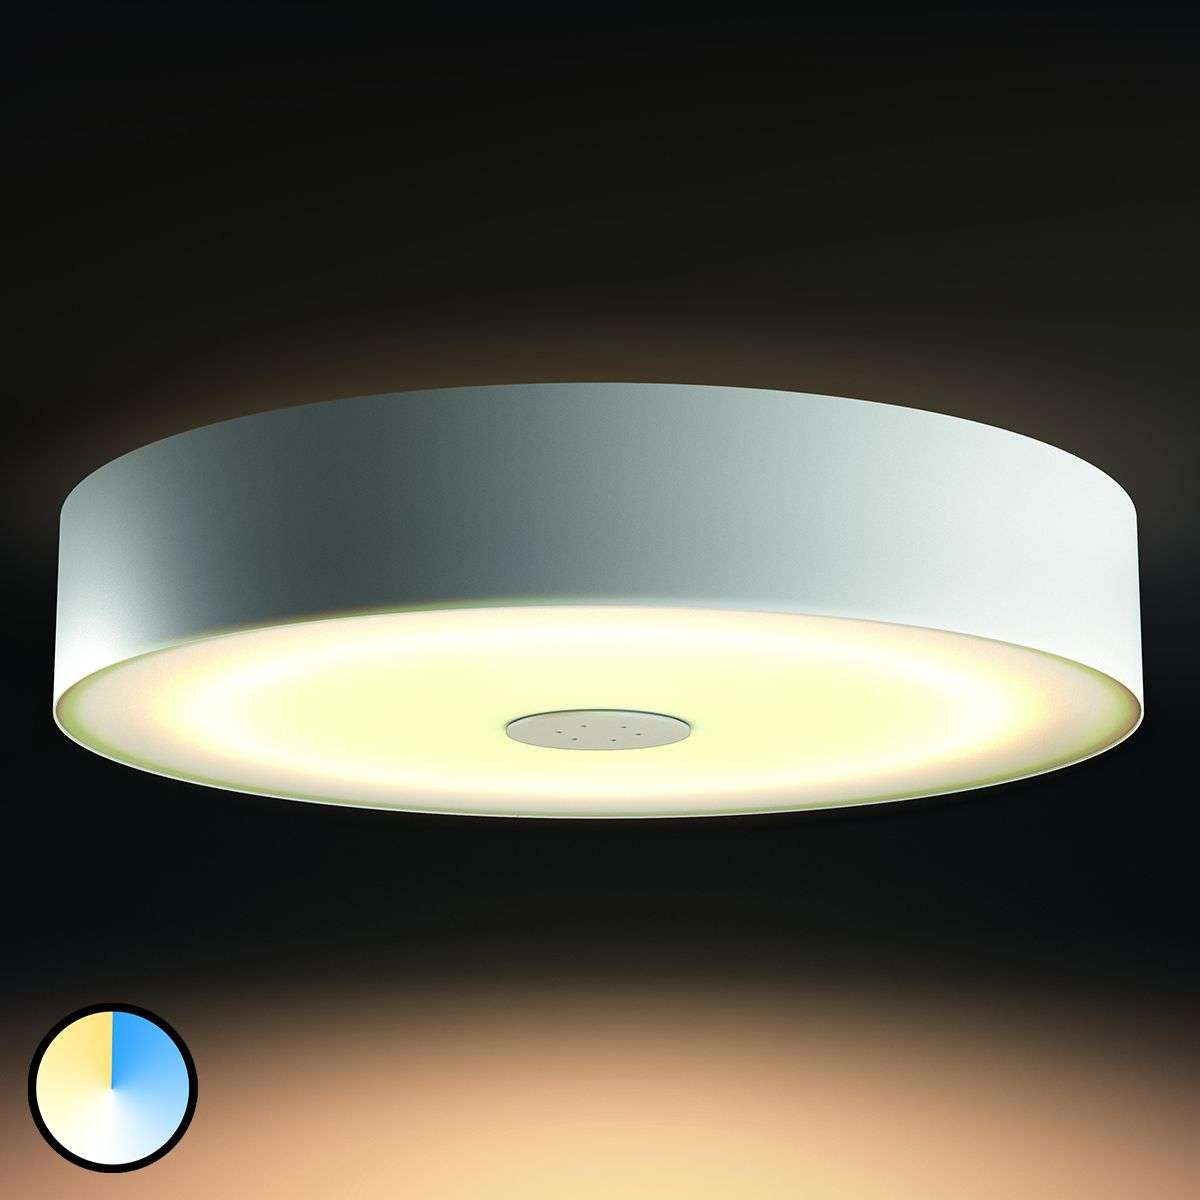 functional philips hue led ceiling lamp fair. Black Bedroom Furniture Sets. Home Design Ideas